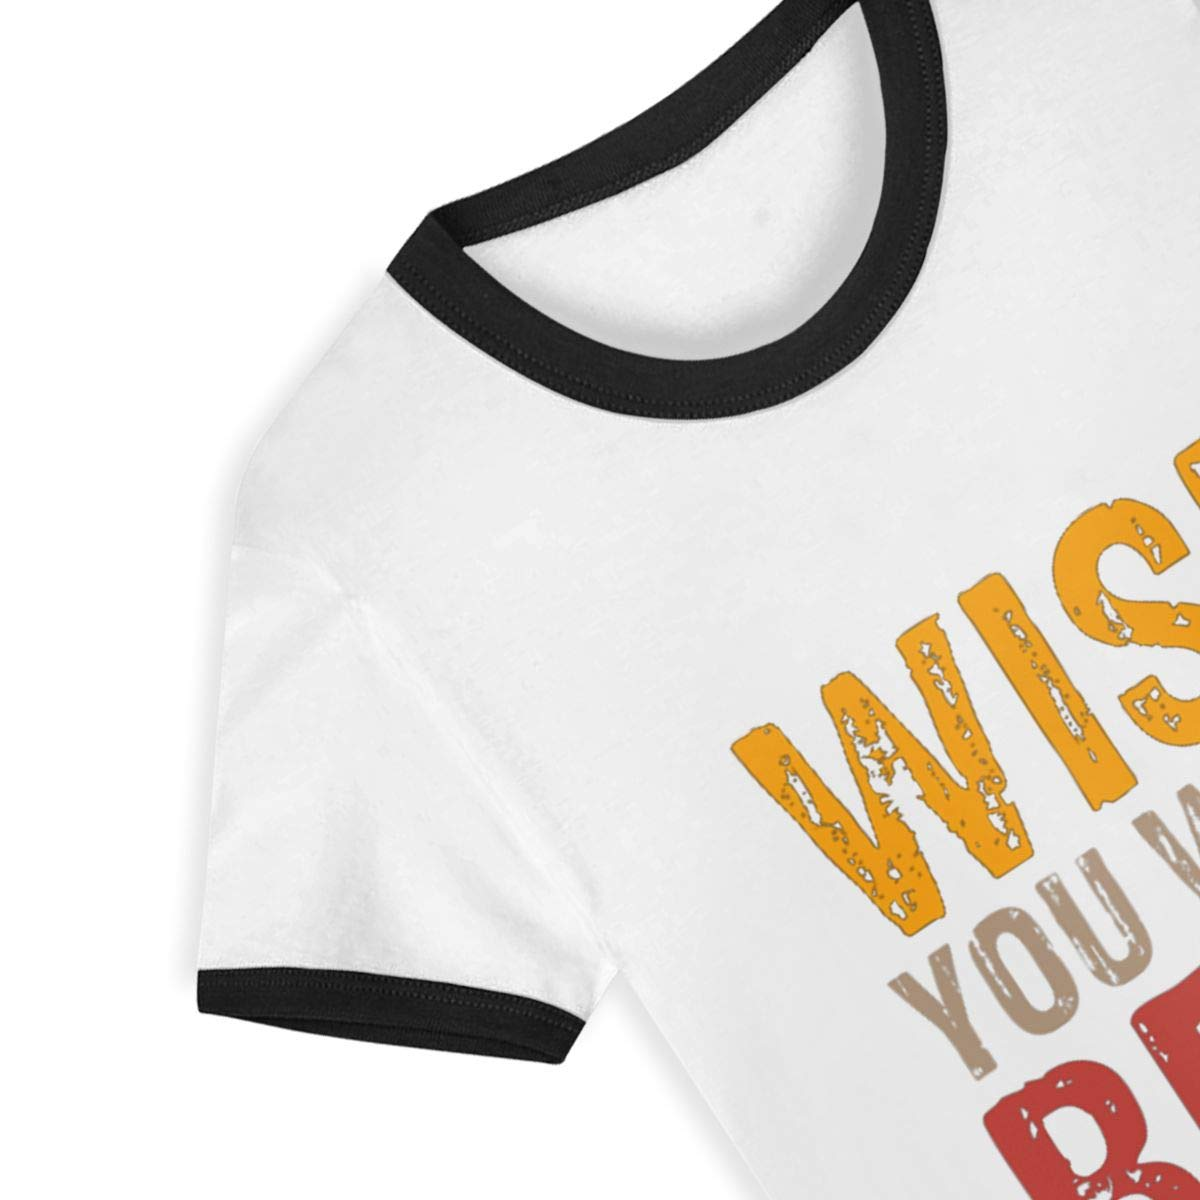 CY SHOP Wish You were Beer Happy Childrens Boys Girls Contrast Short Sleeve T-Shirt